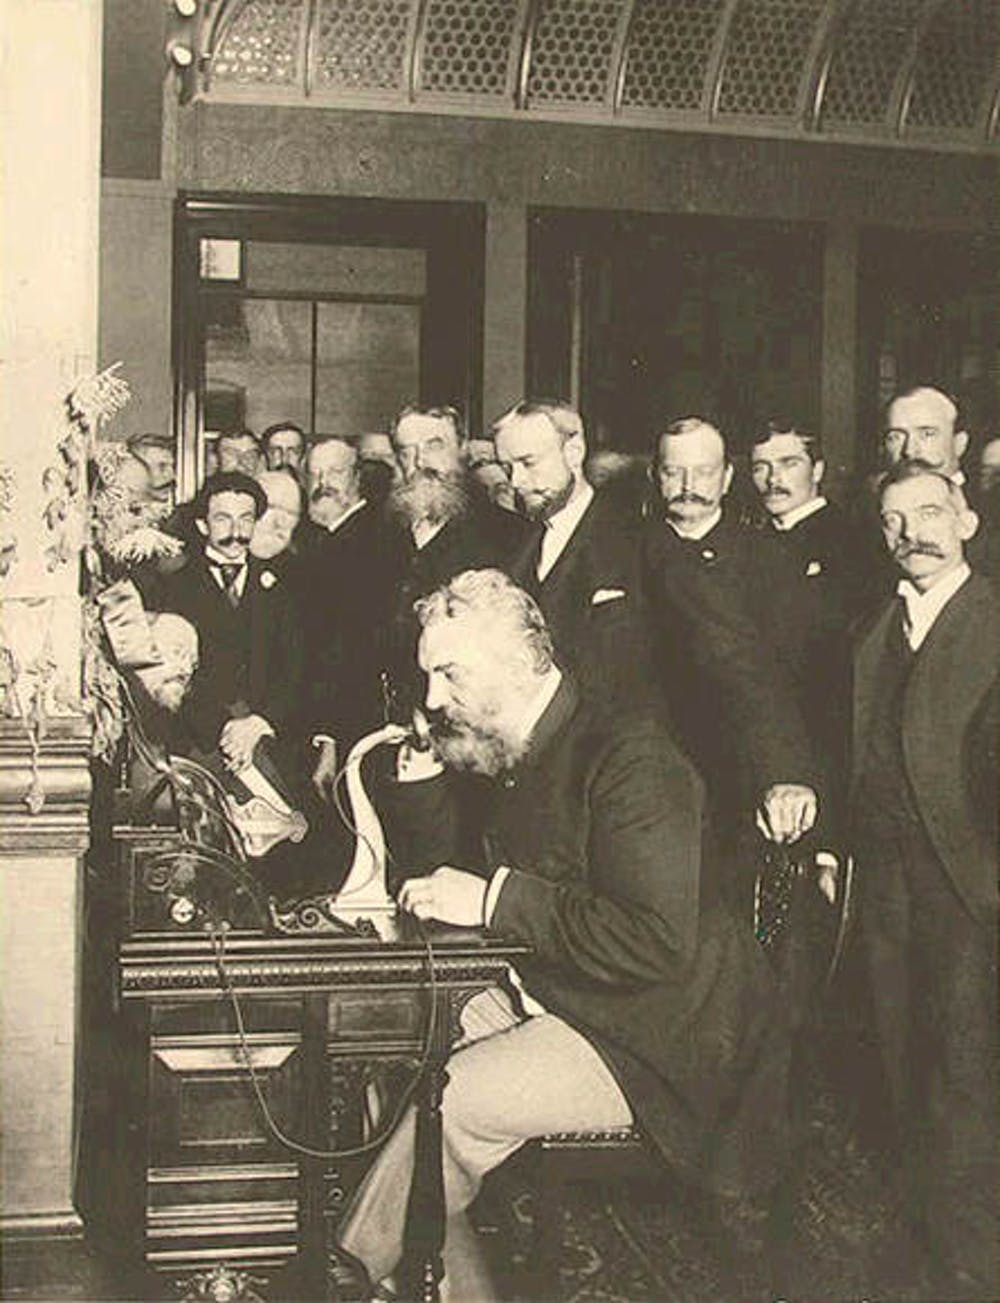 Rise and fall of the landline: 143 years of telephones